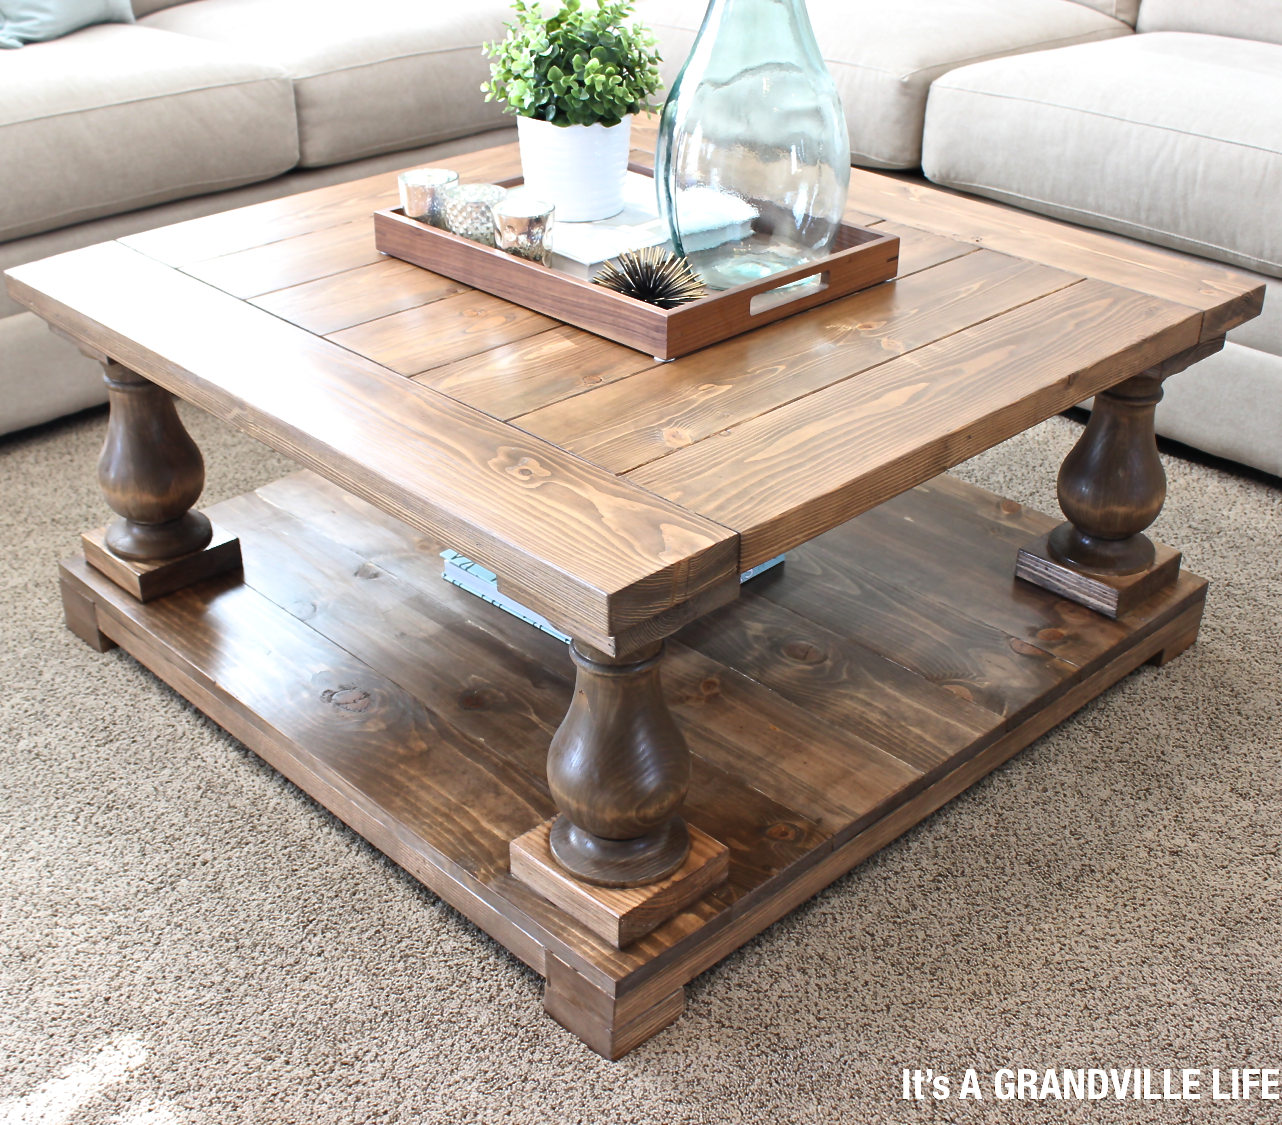 It 39 s a grandville life diy balustrade coffee table for Diy coffee and end tables